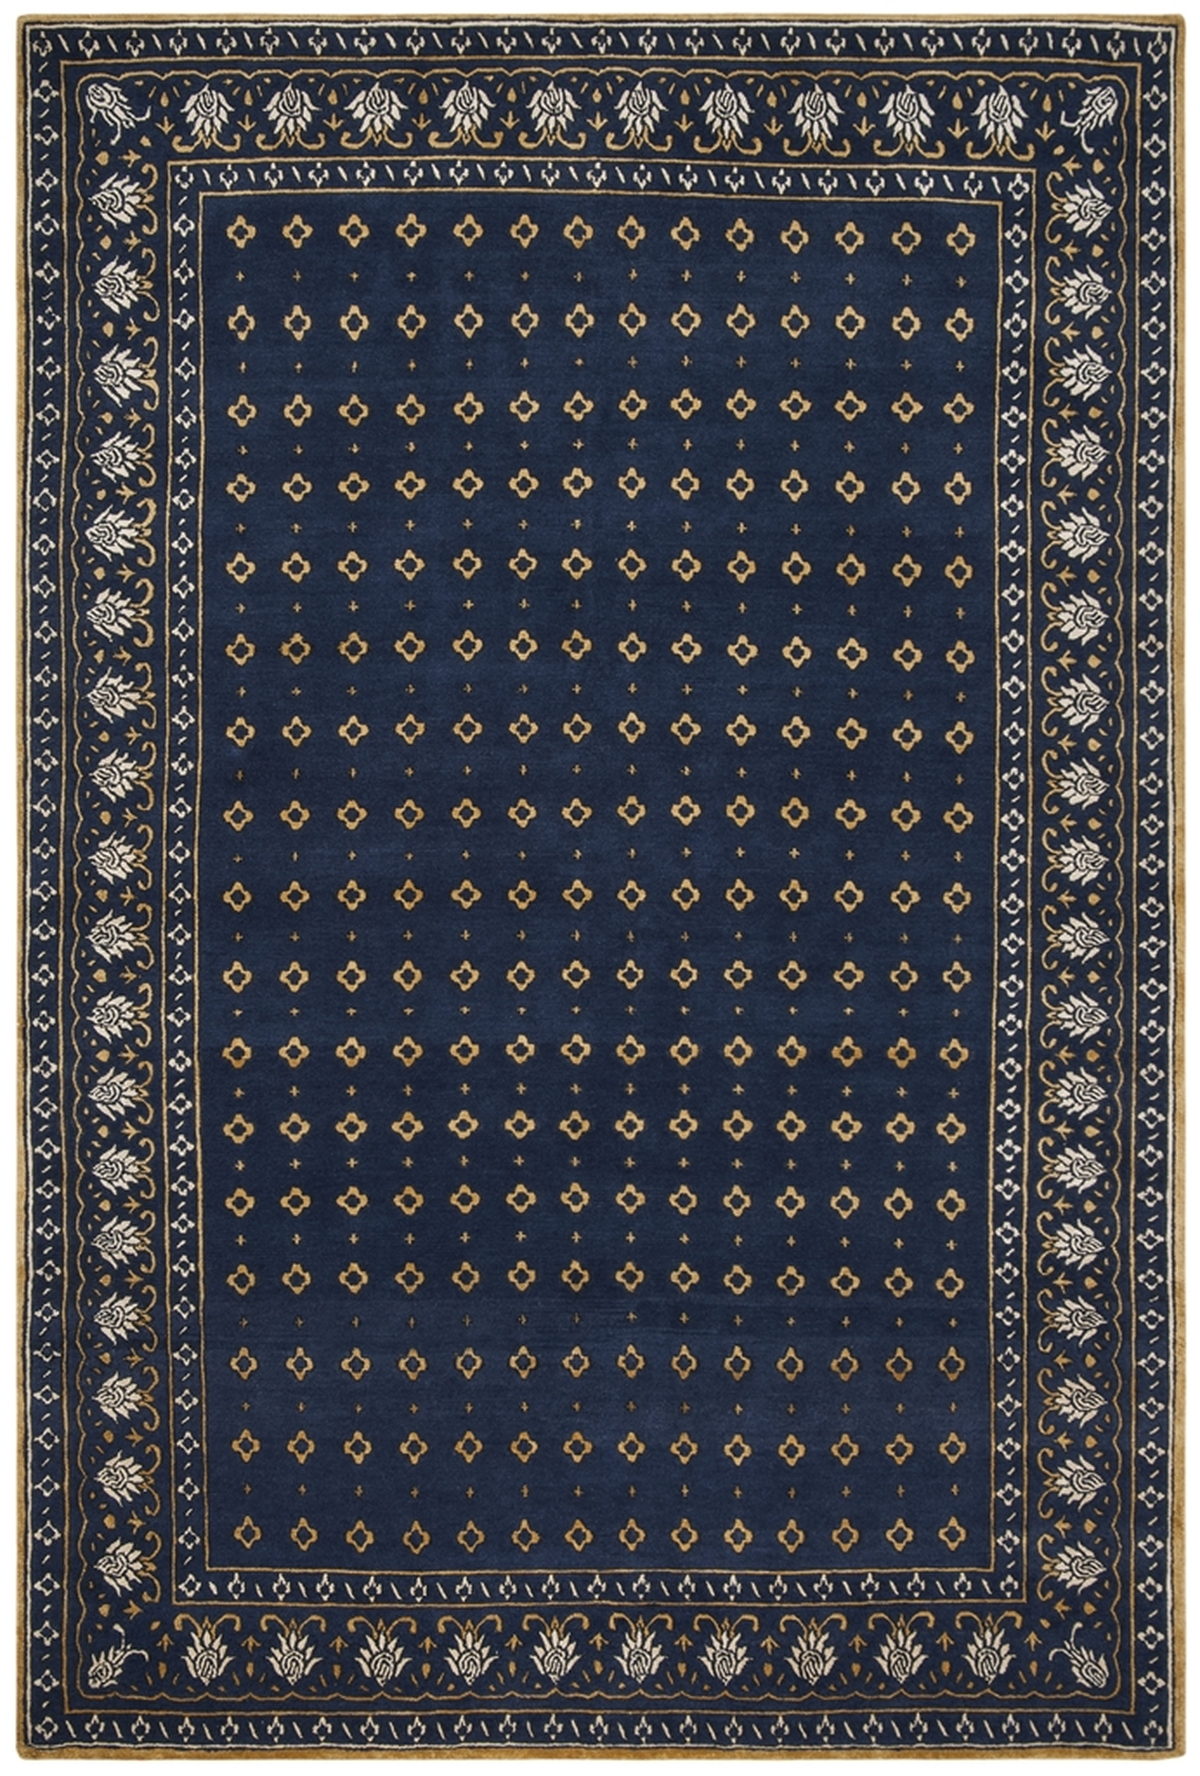 Rug Szk272b Nepalese Area Rugs By Safavieh